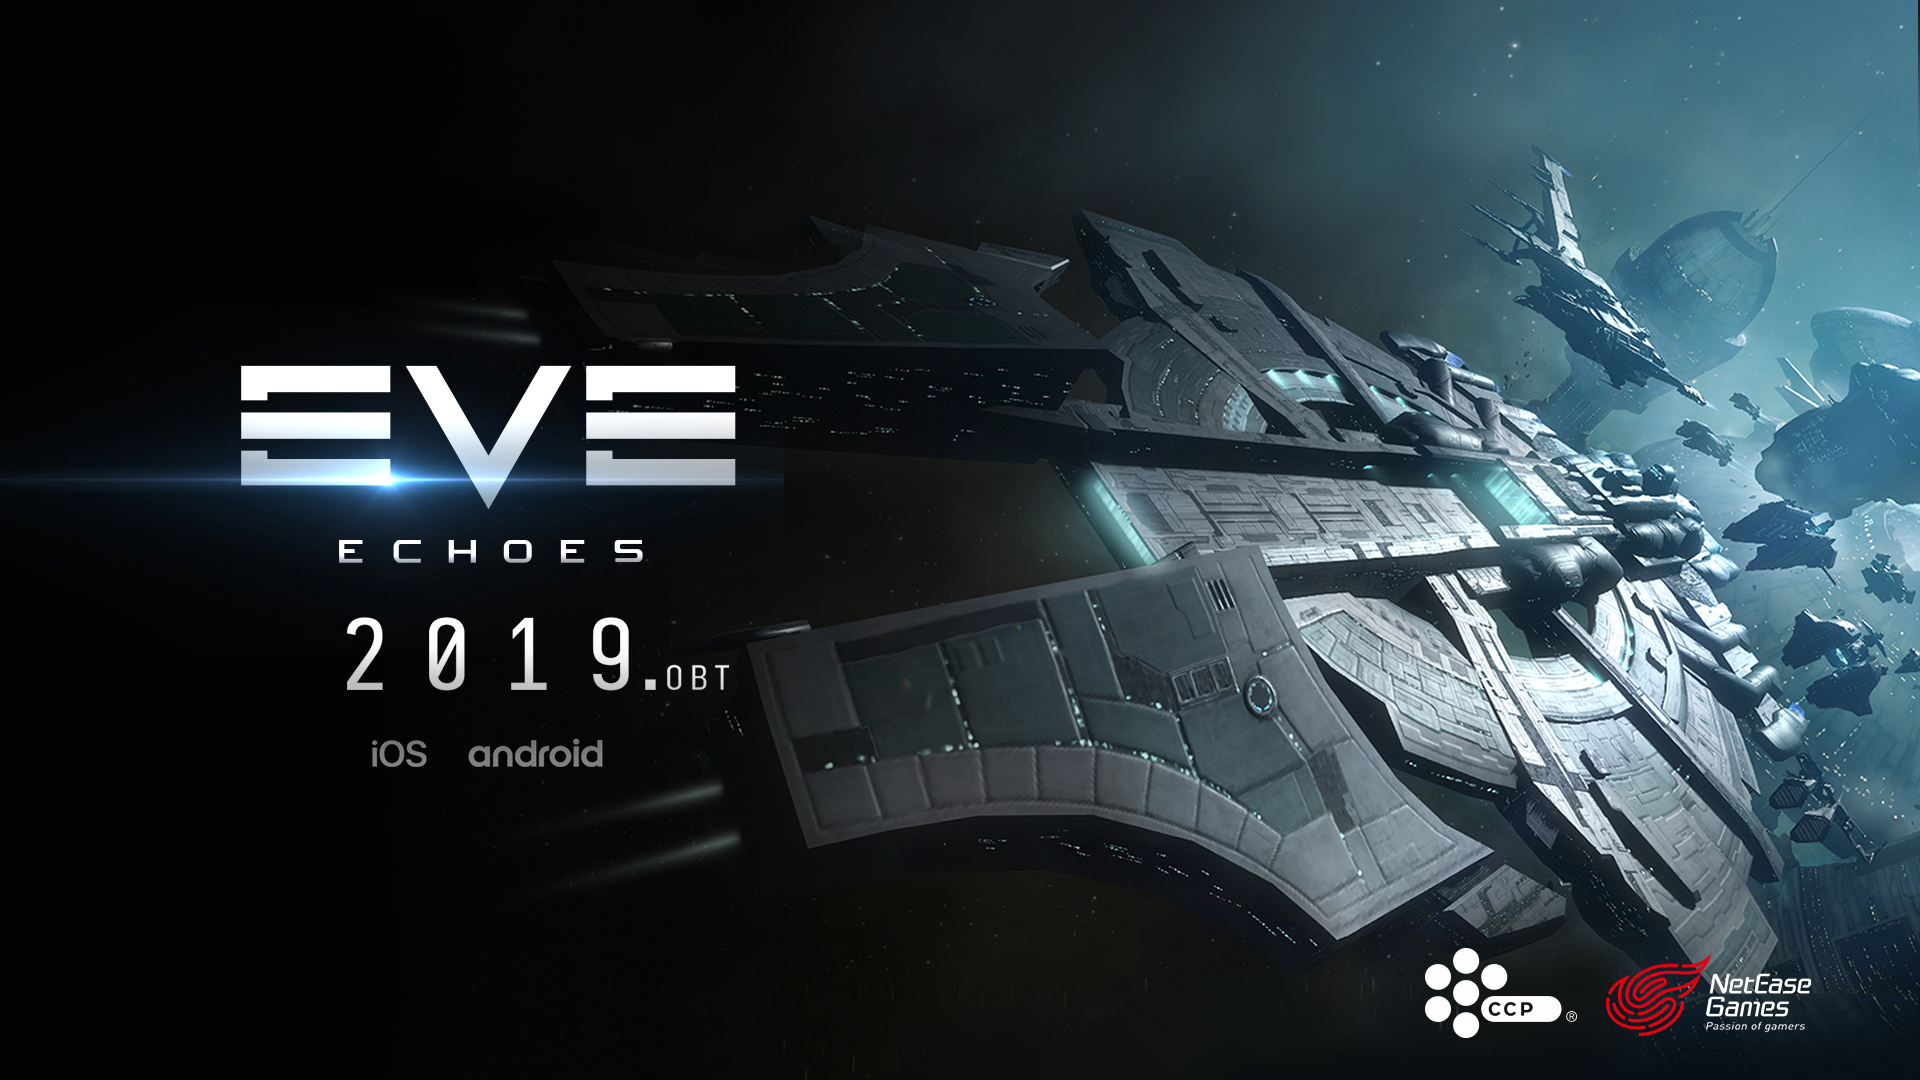 CCP Games is bringing epic space battles to mobile in EVE: Echoes